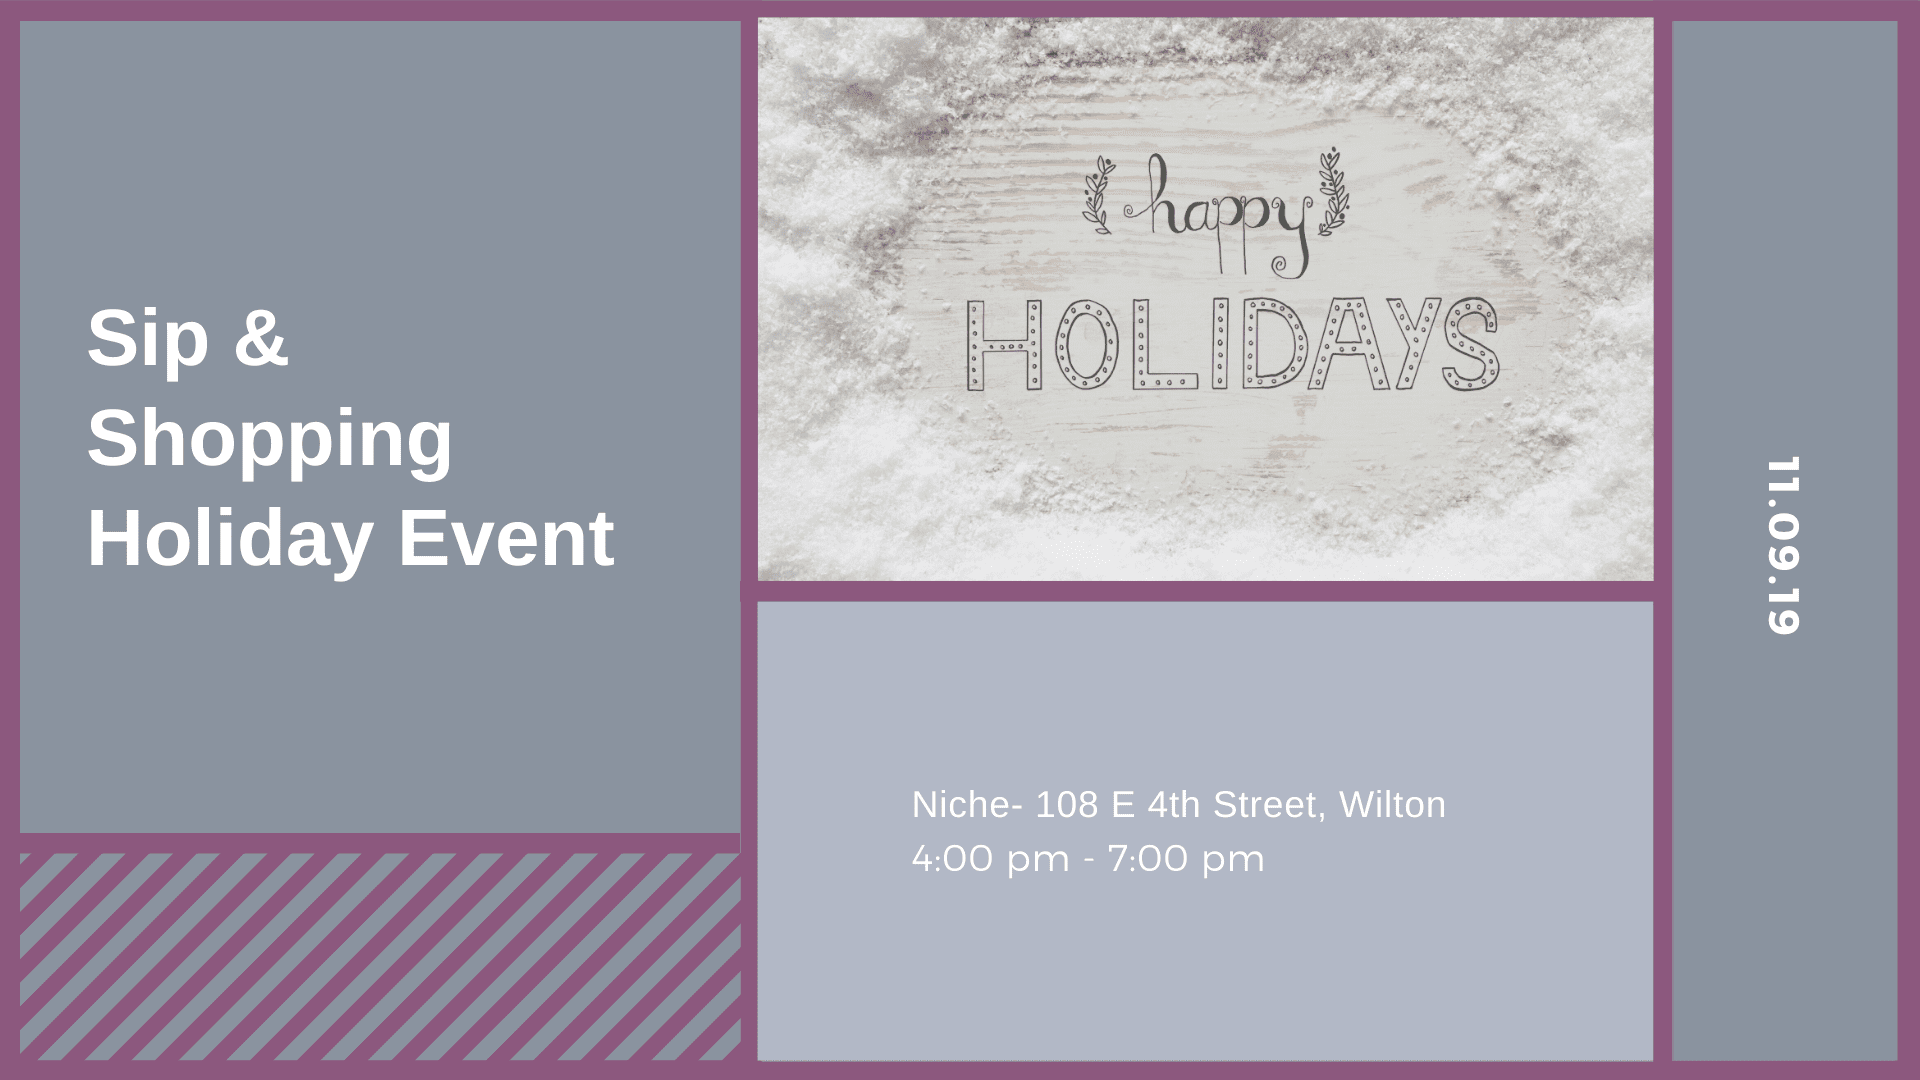 Sip & Shopping Holiday Event